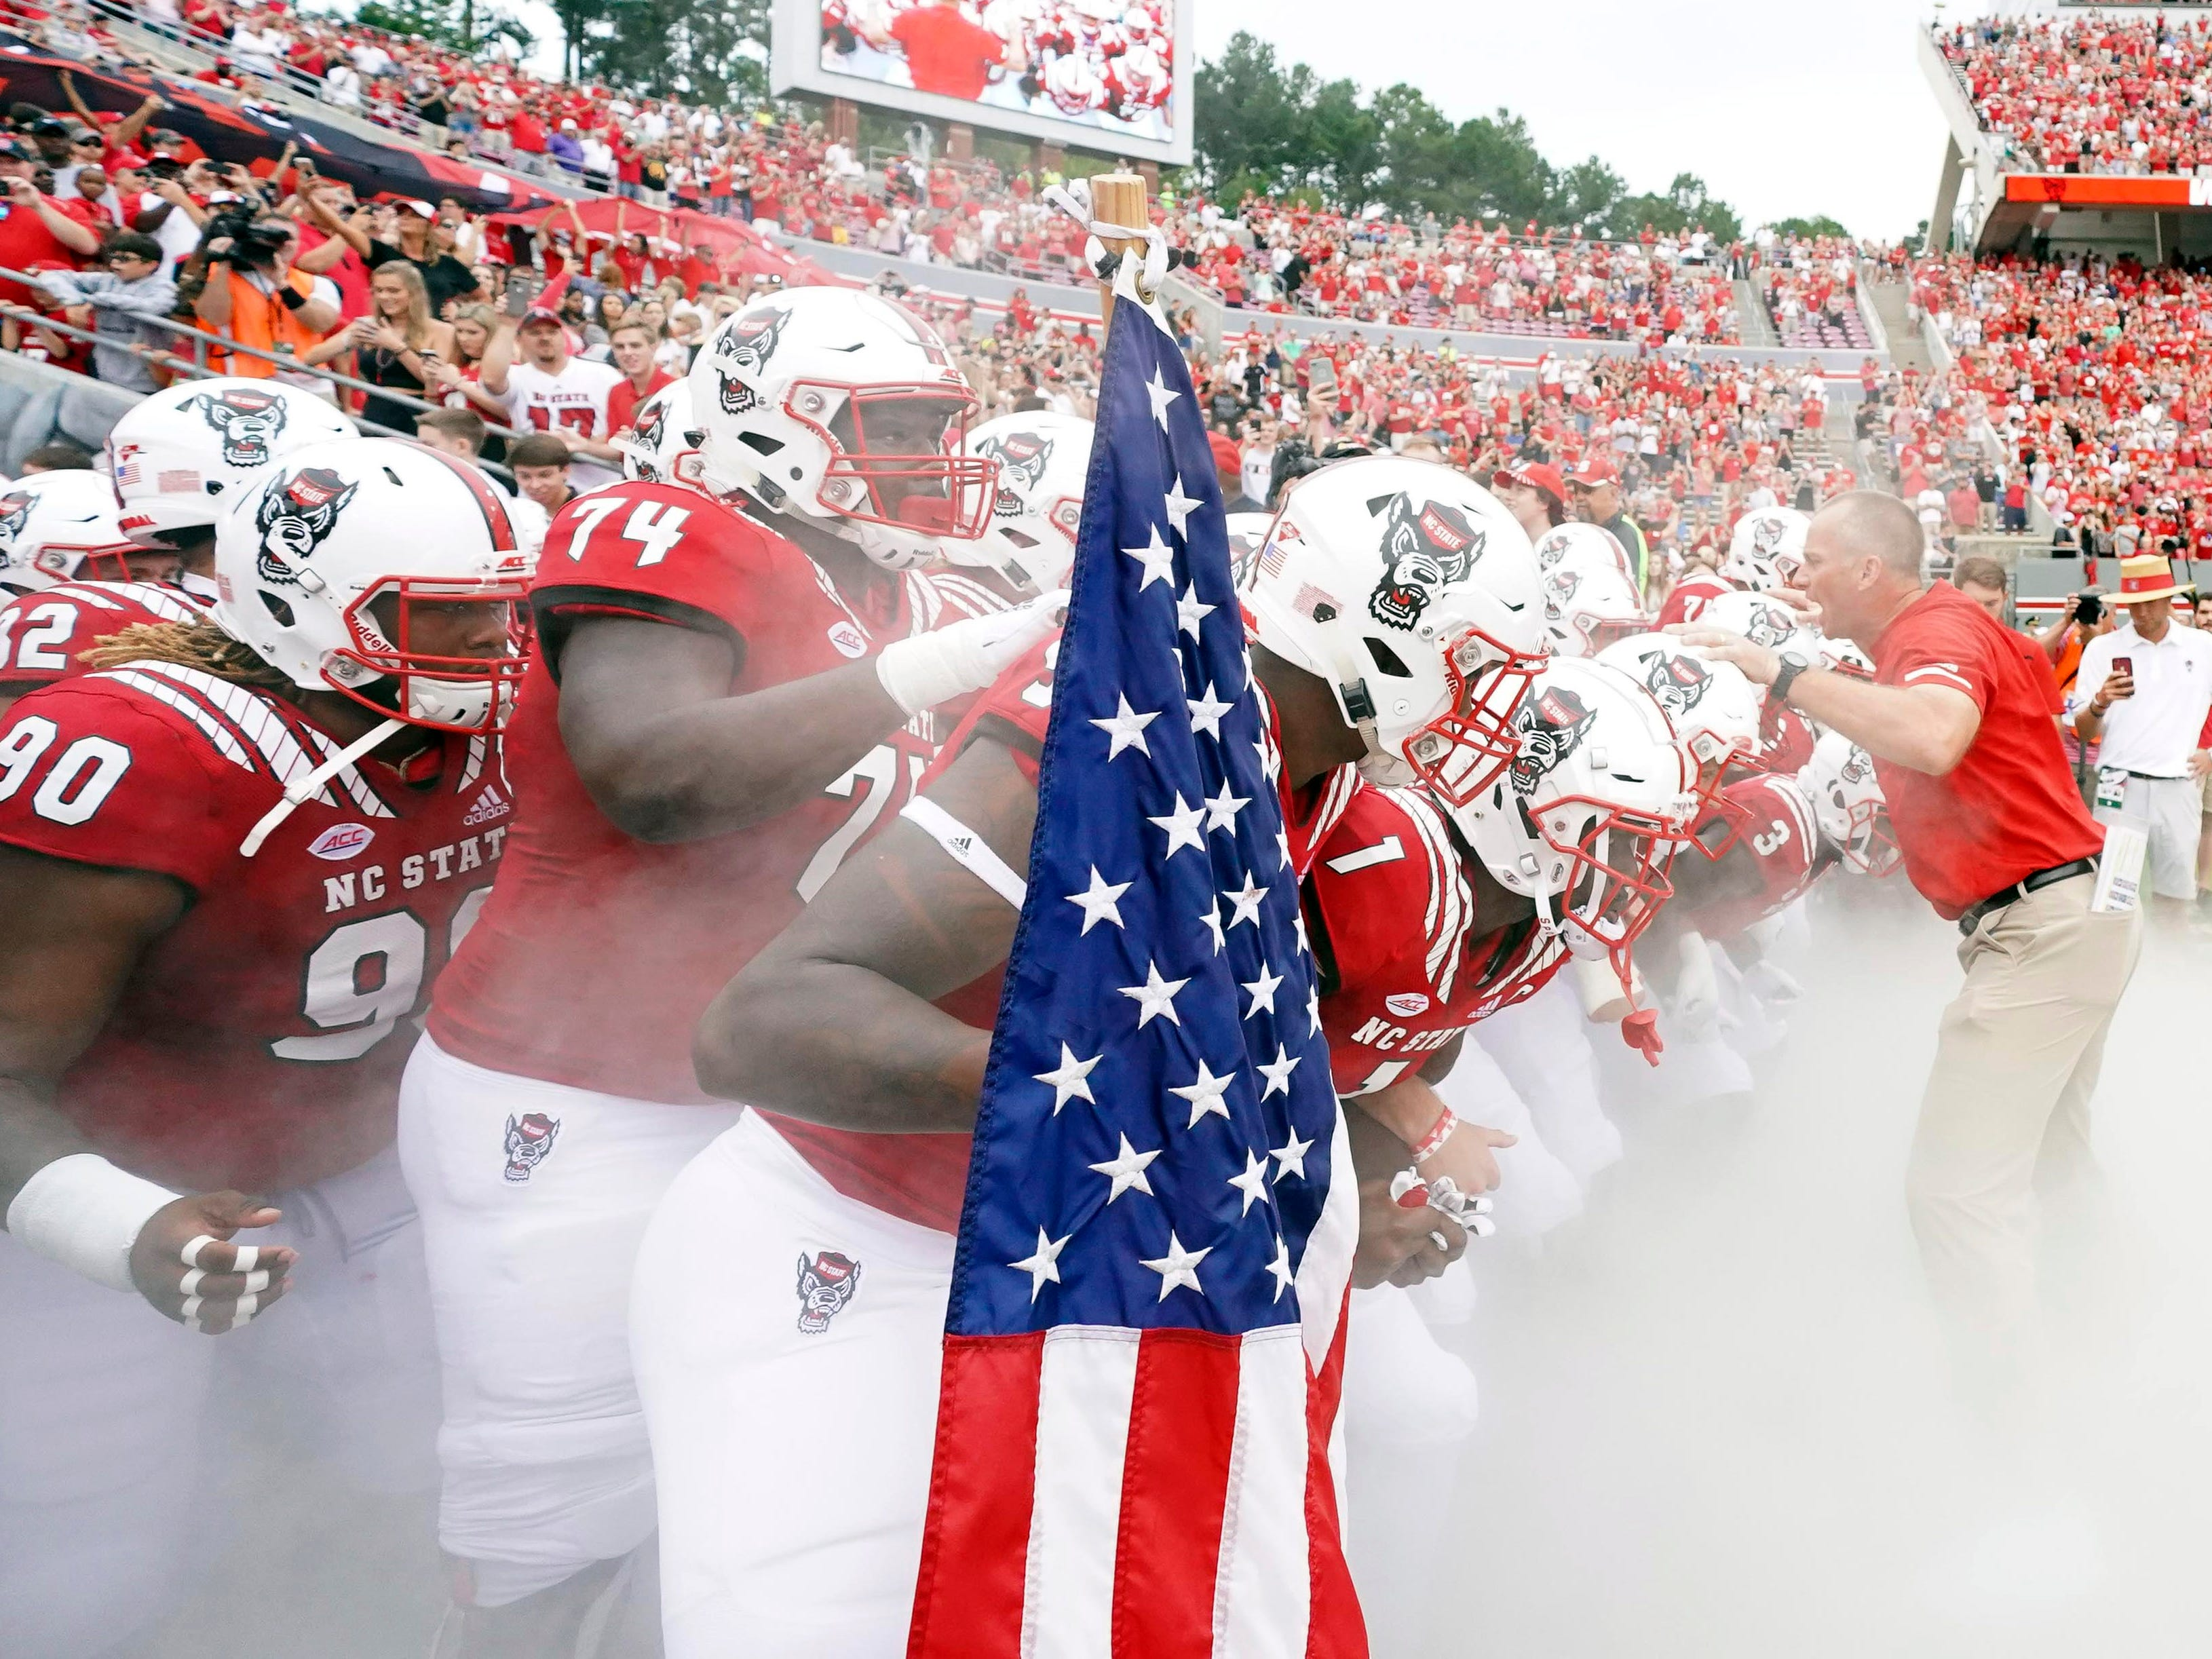 North Carolina State Wolfpack players come out onto the field before the game against the Boston College Eagles at Carter-Finley Stadium.